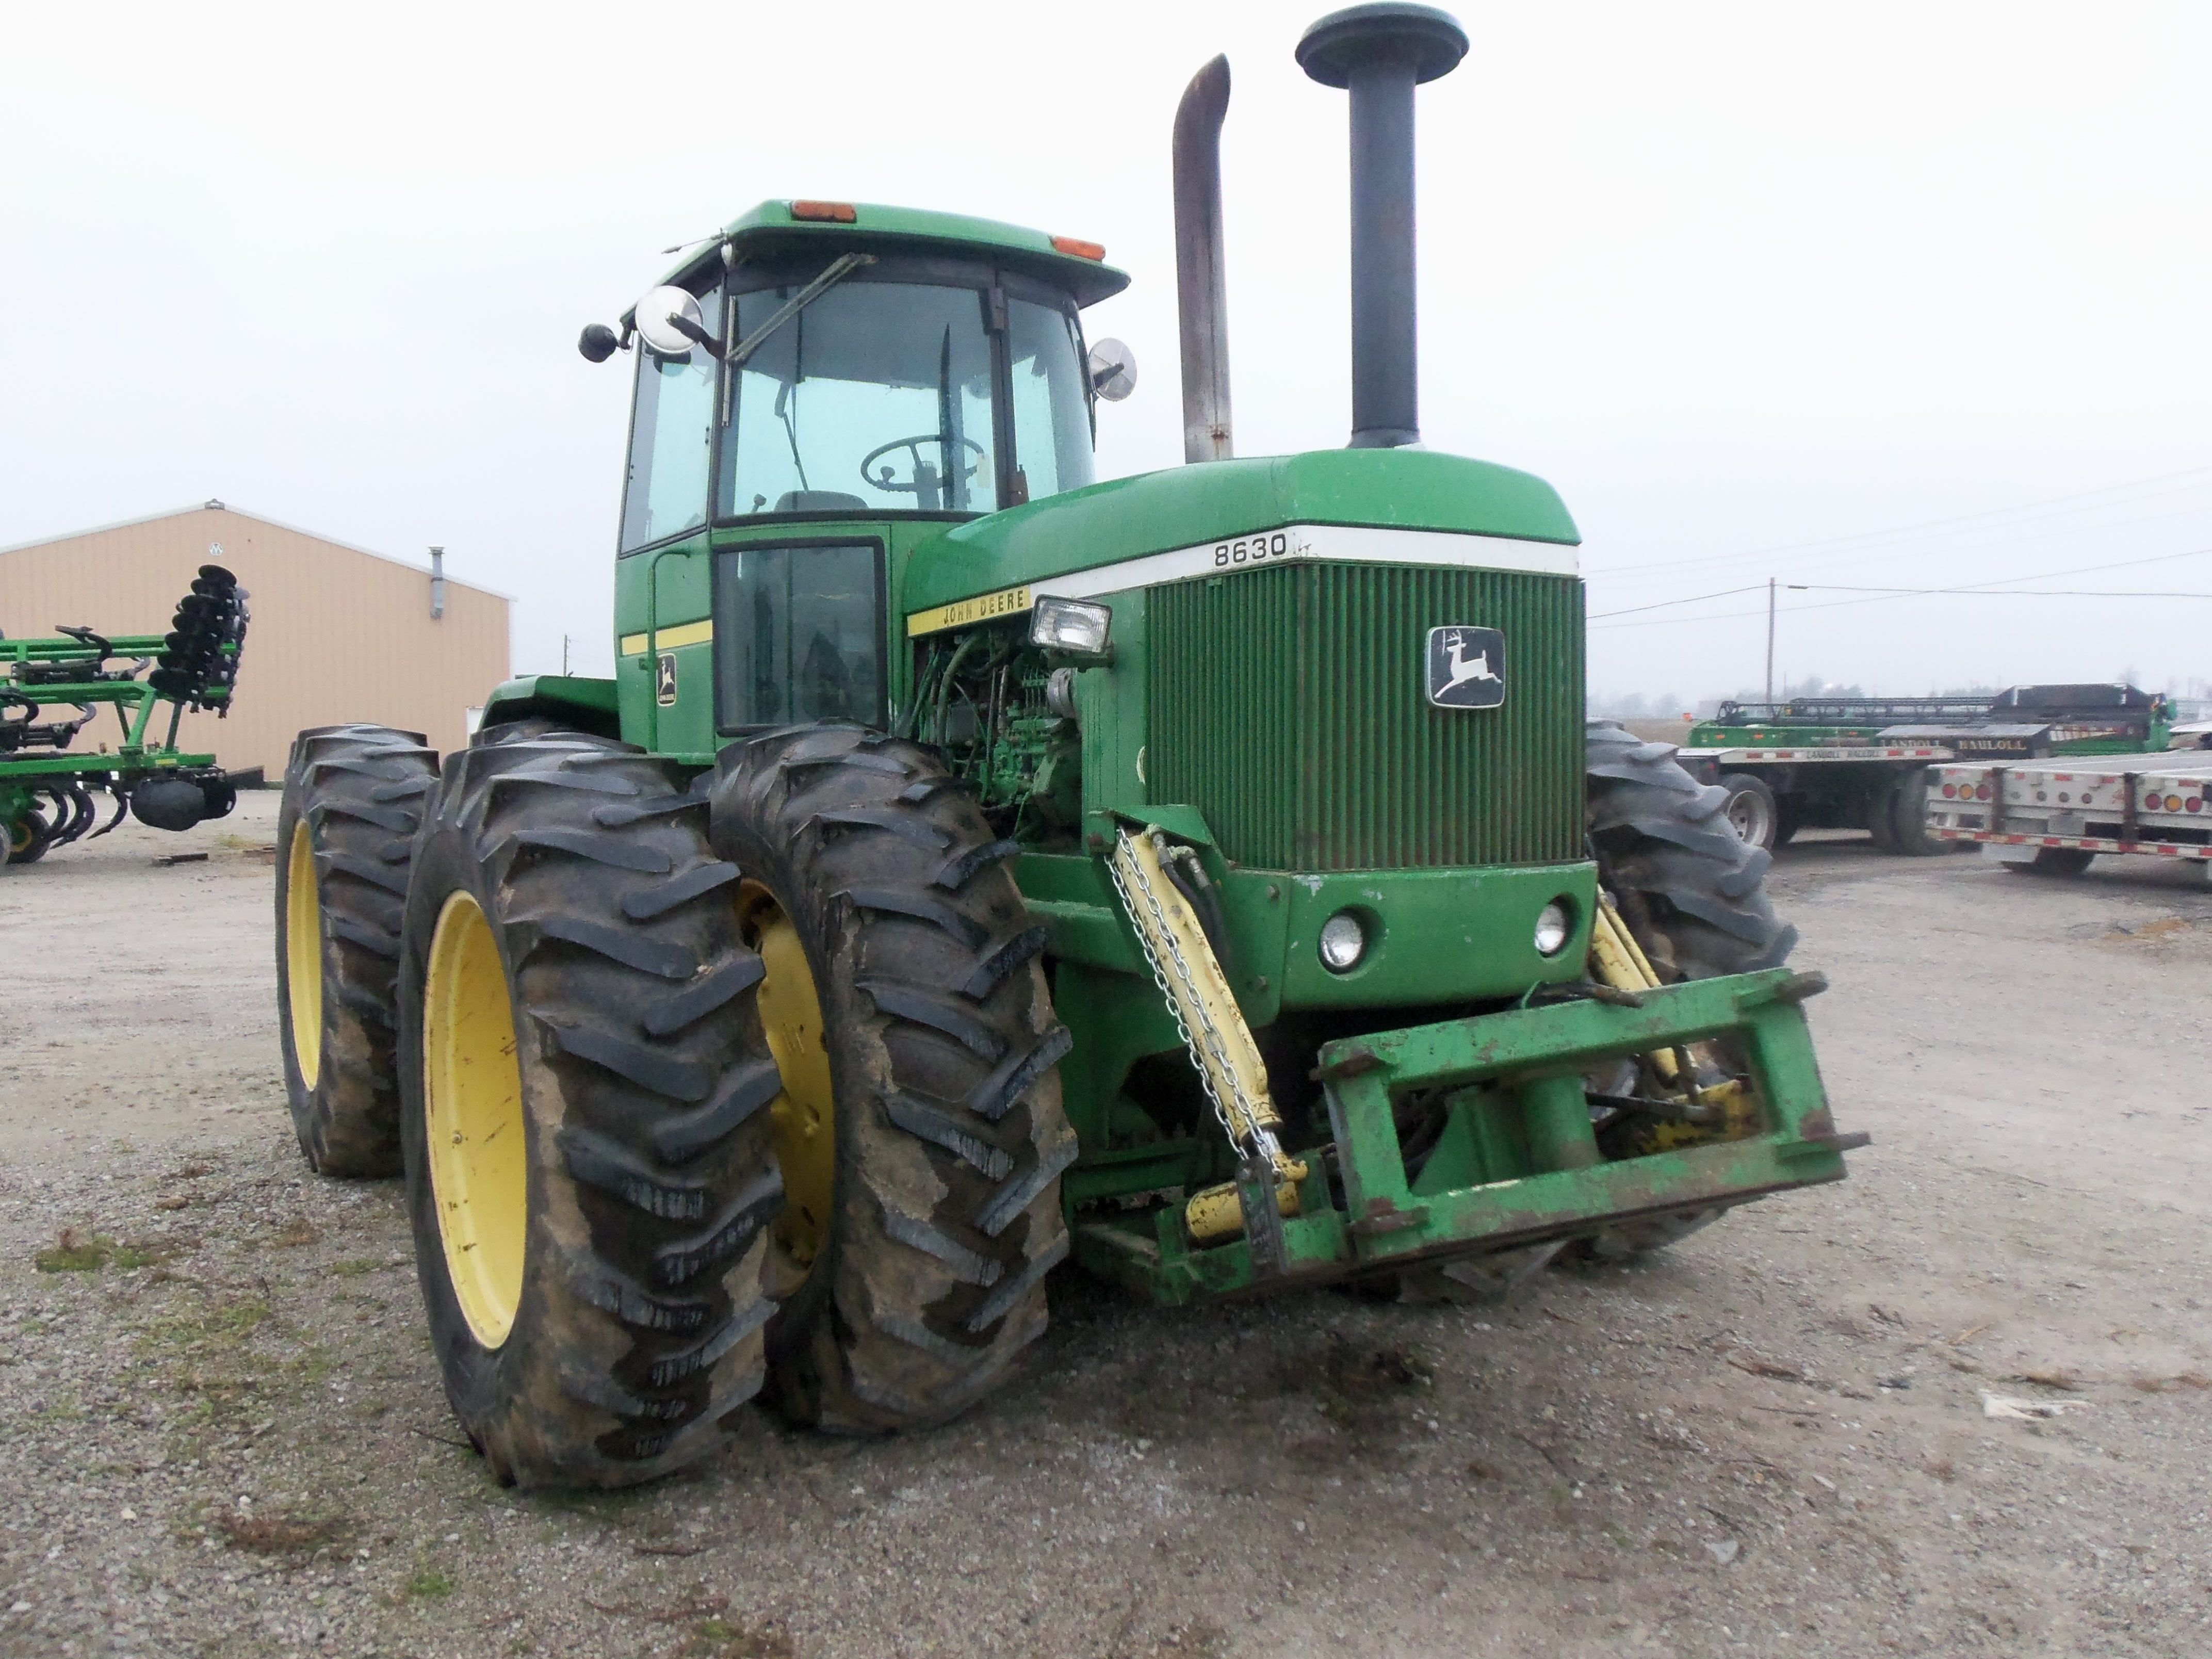 Either a 8430 or a 8630 | John Deere equipment | P